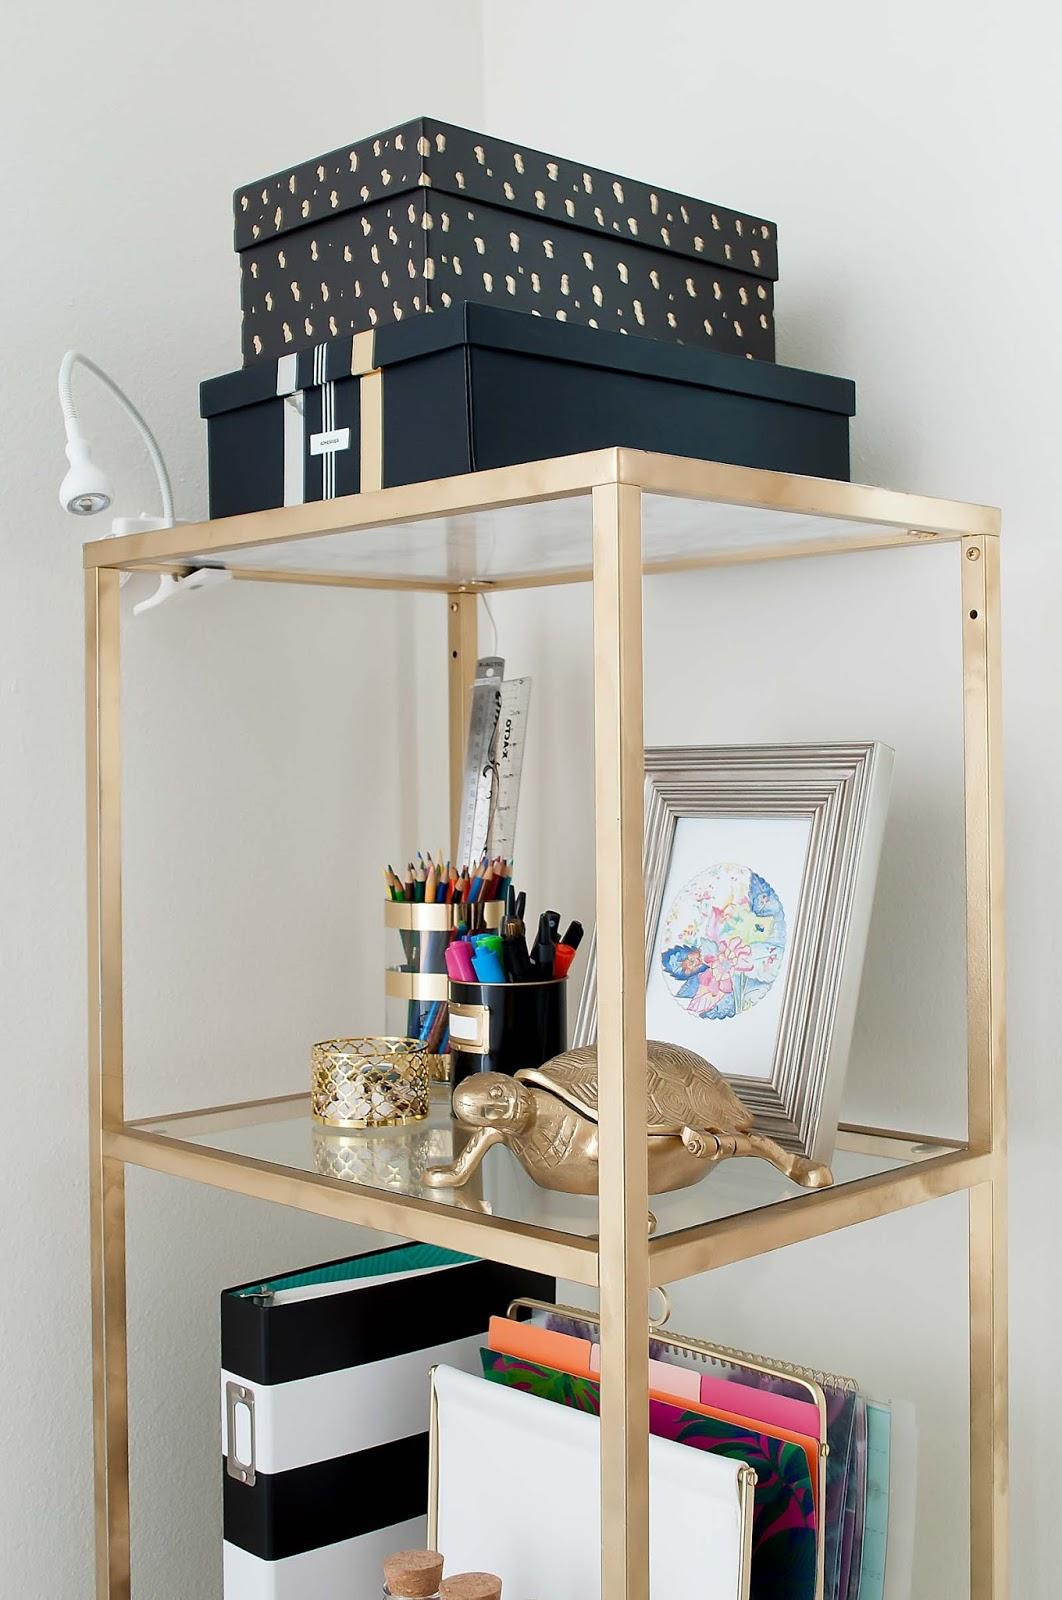 DIY home office organization ideas that are nearly free! This gold vittsojo shelf looks fabulous!